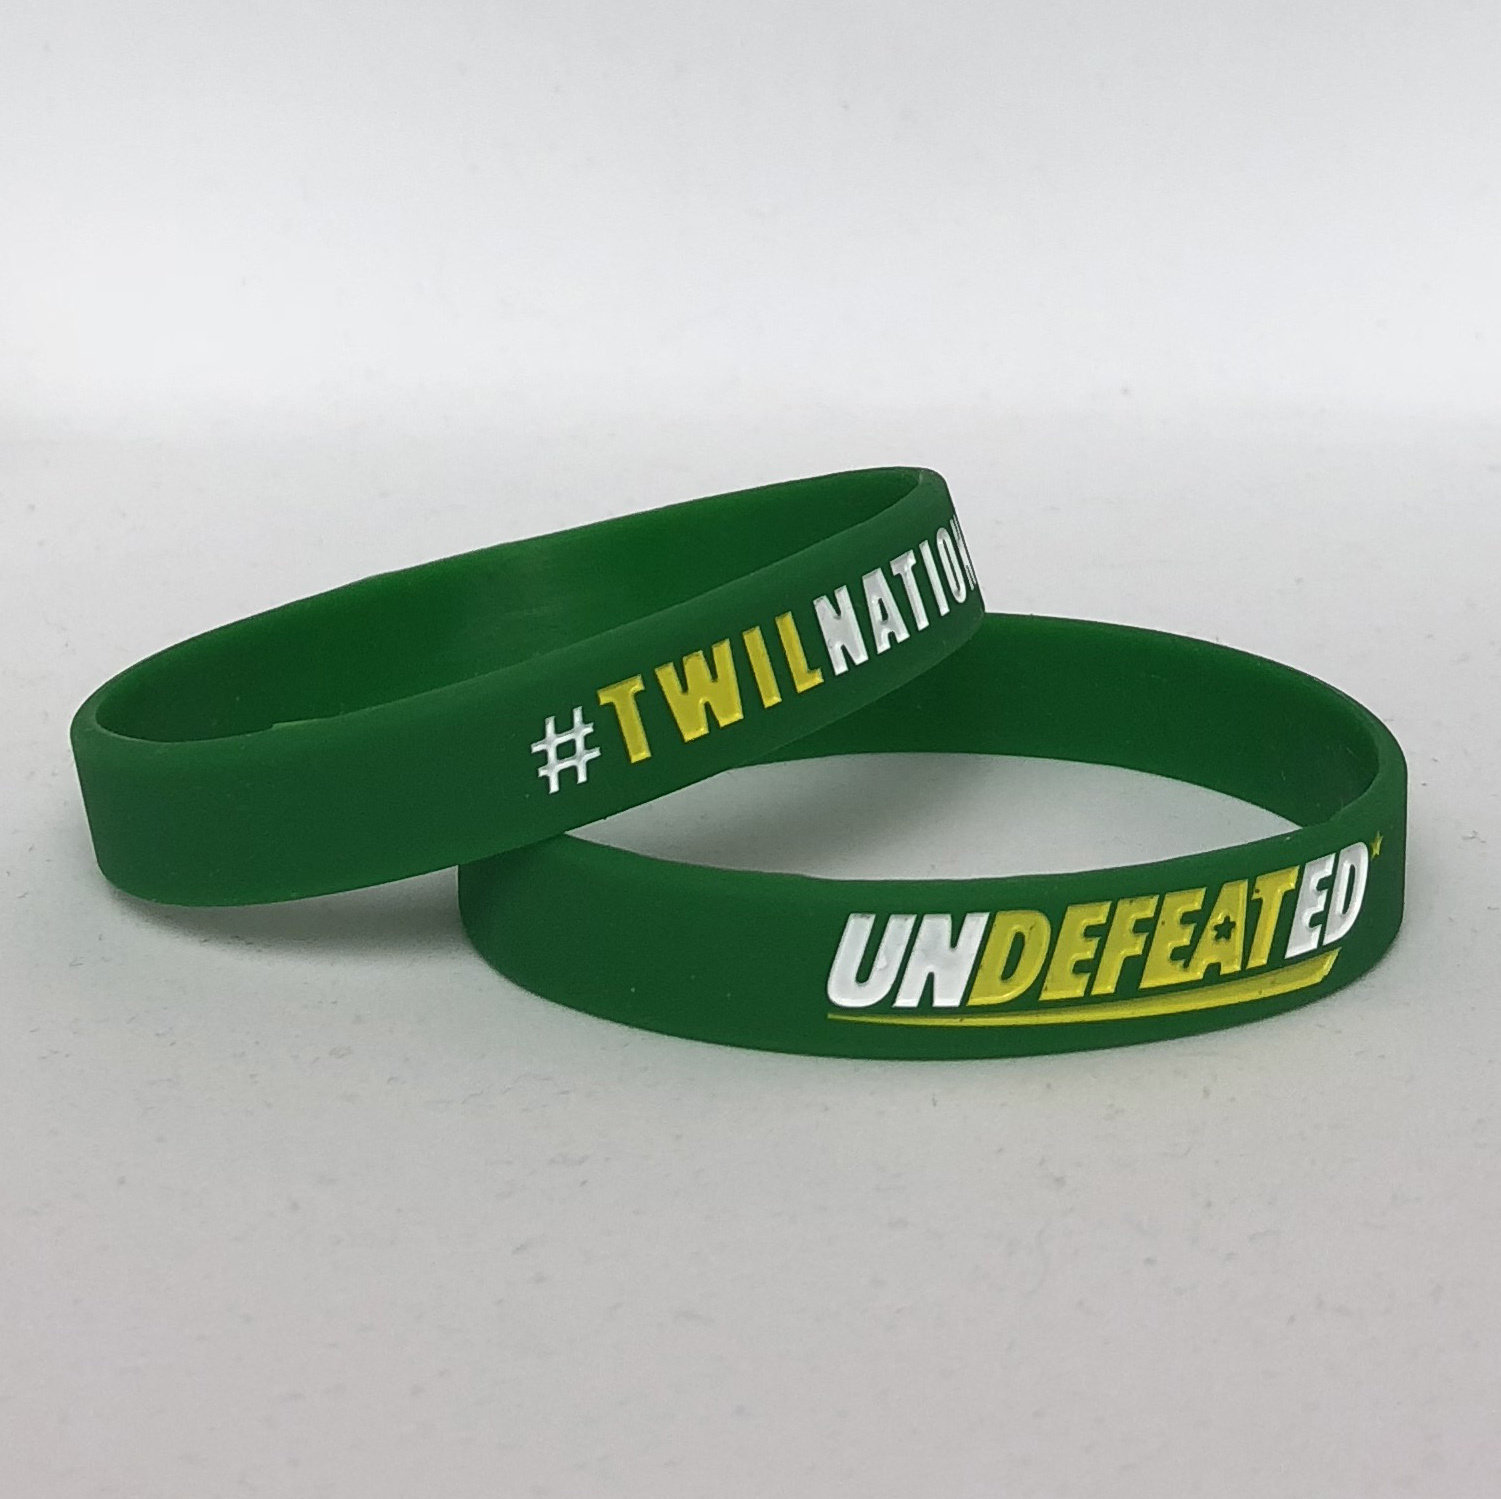 TWILNation Undefeated* Wristband TWIL-TUW-001